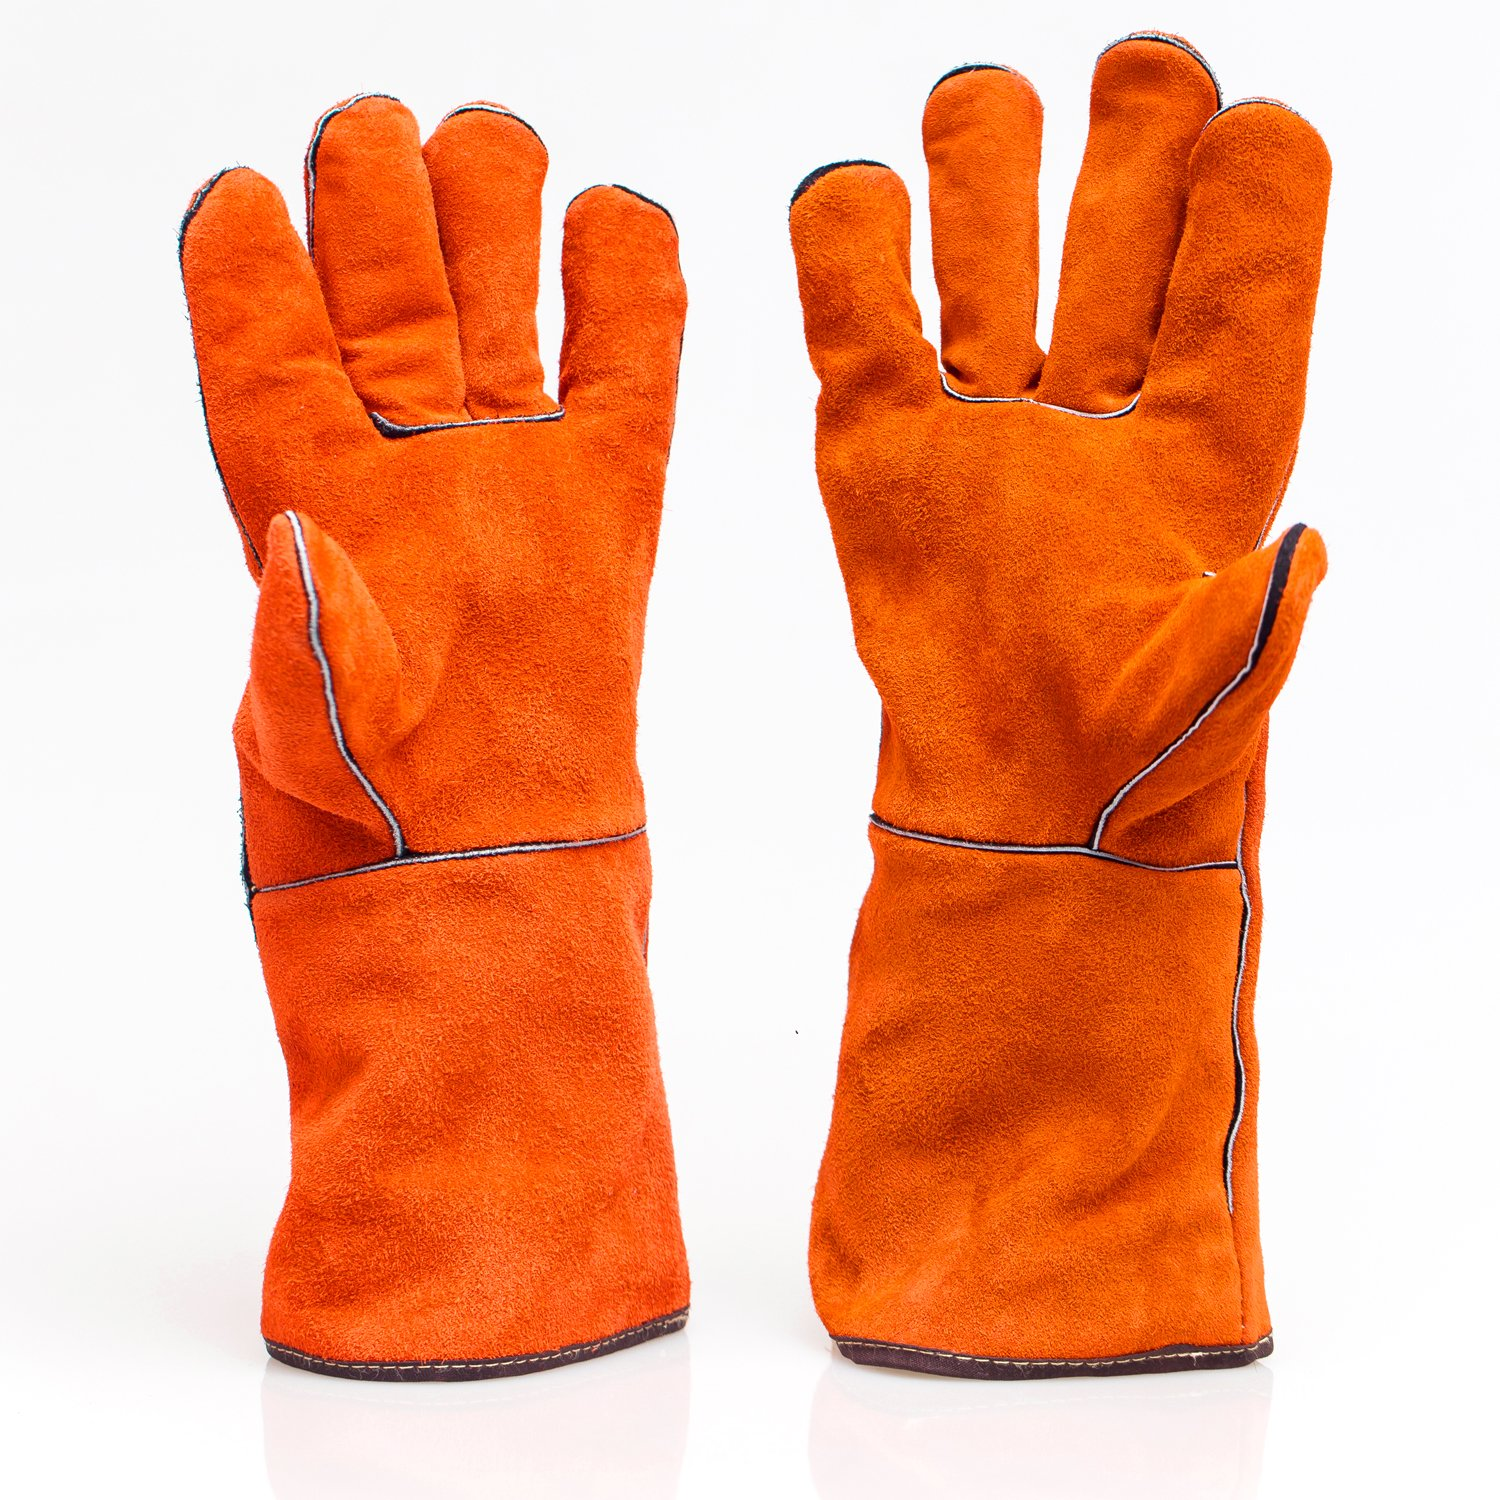 Welding Leather Gloves with Heat &Fire Resistant, Durable Soft Cotton Lining 14 Inches Extra Long Sleeve Work Gloves for Gardening/Household /BBQ/Oven/Stove(Orange)